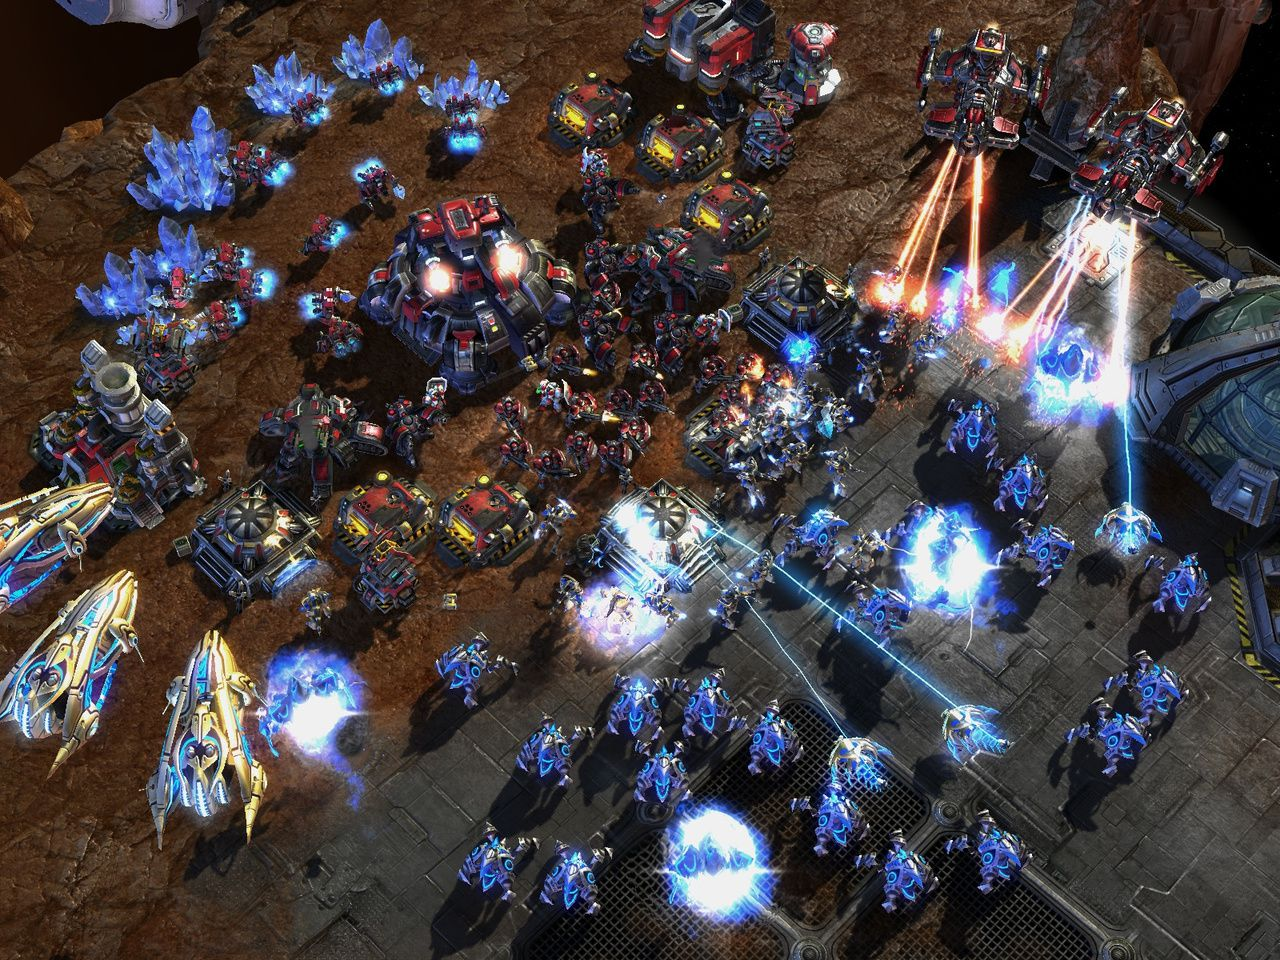 Starcraft II - Wings of Liberty - Blizzard Entertainment